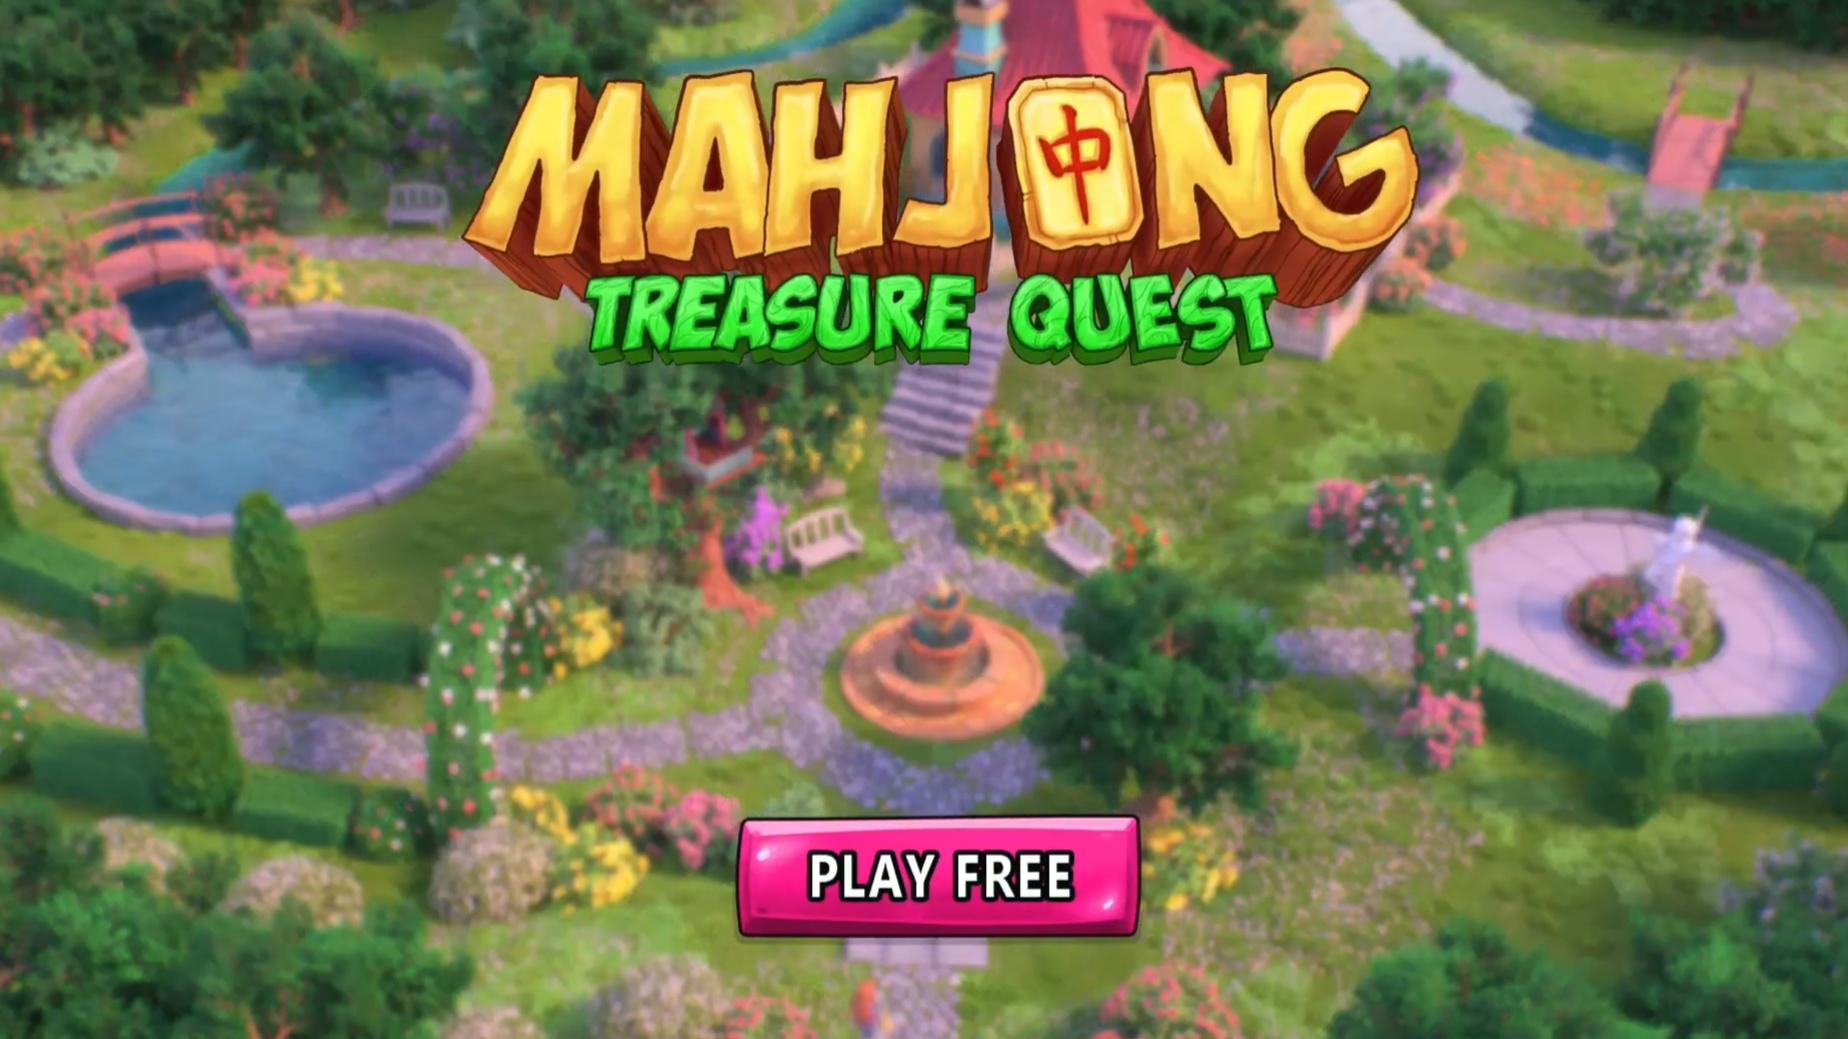 Mahjong Treasure Quest MOD APK Hack + Unlimited Coins